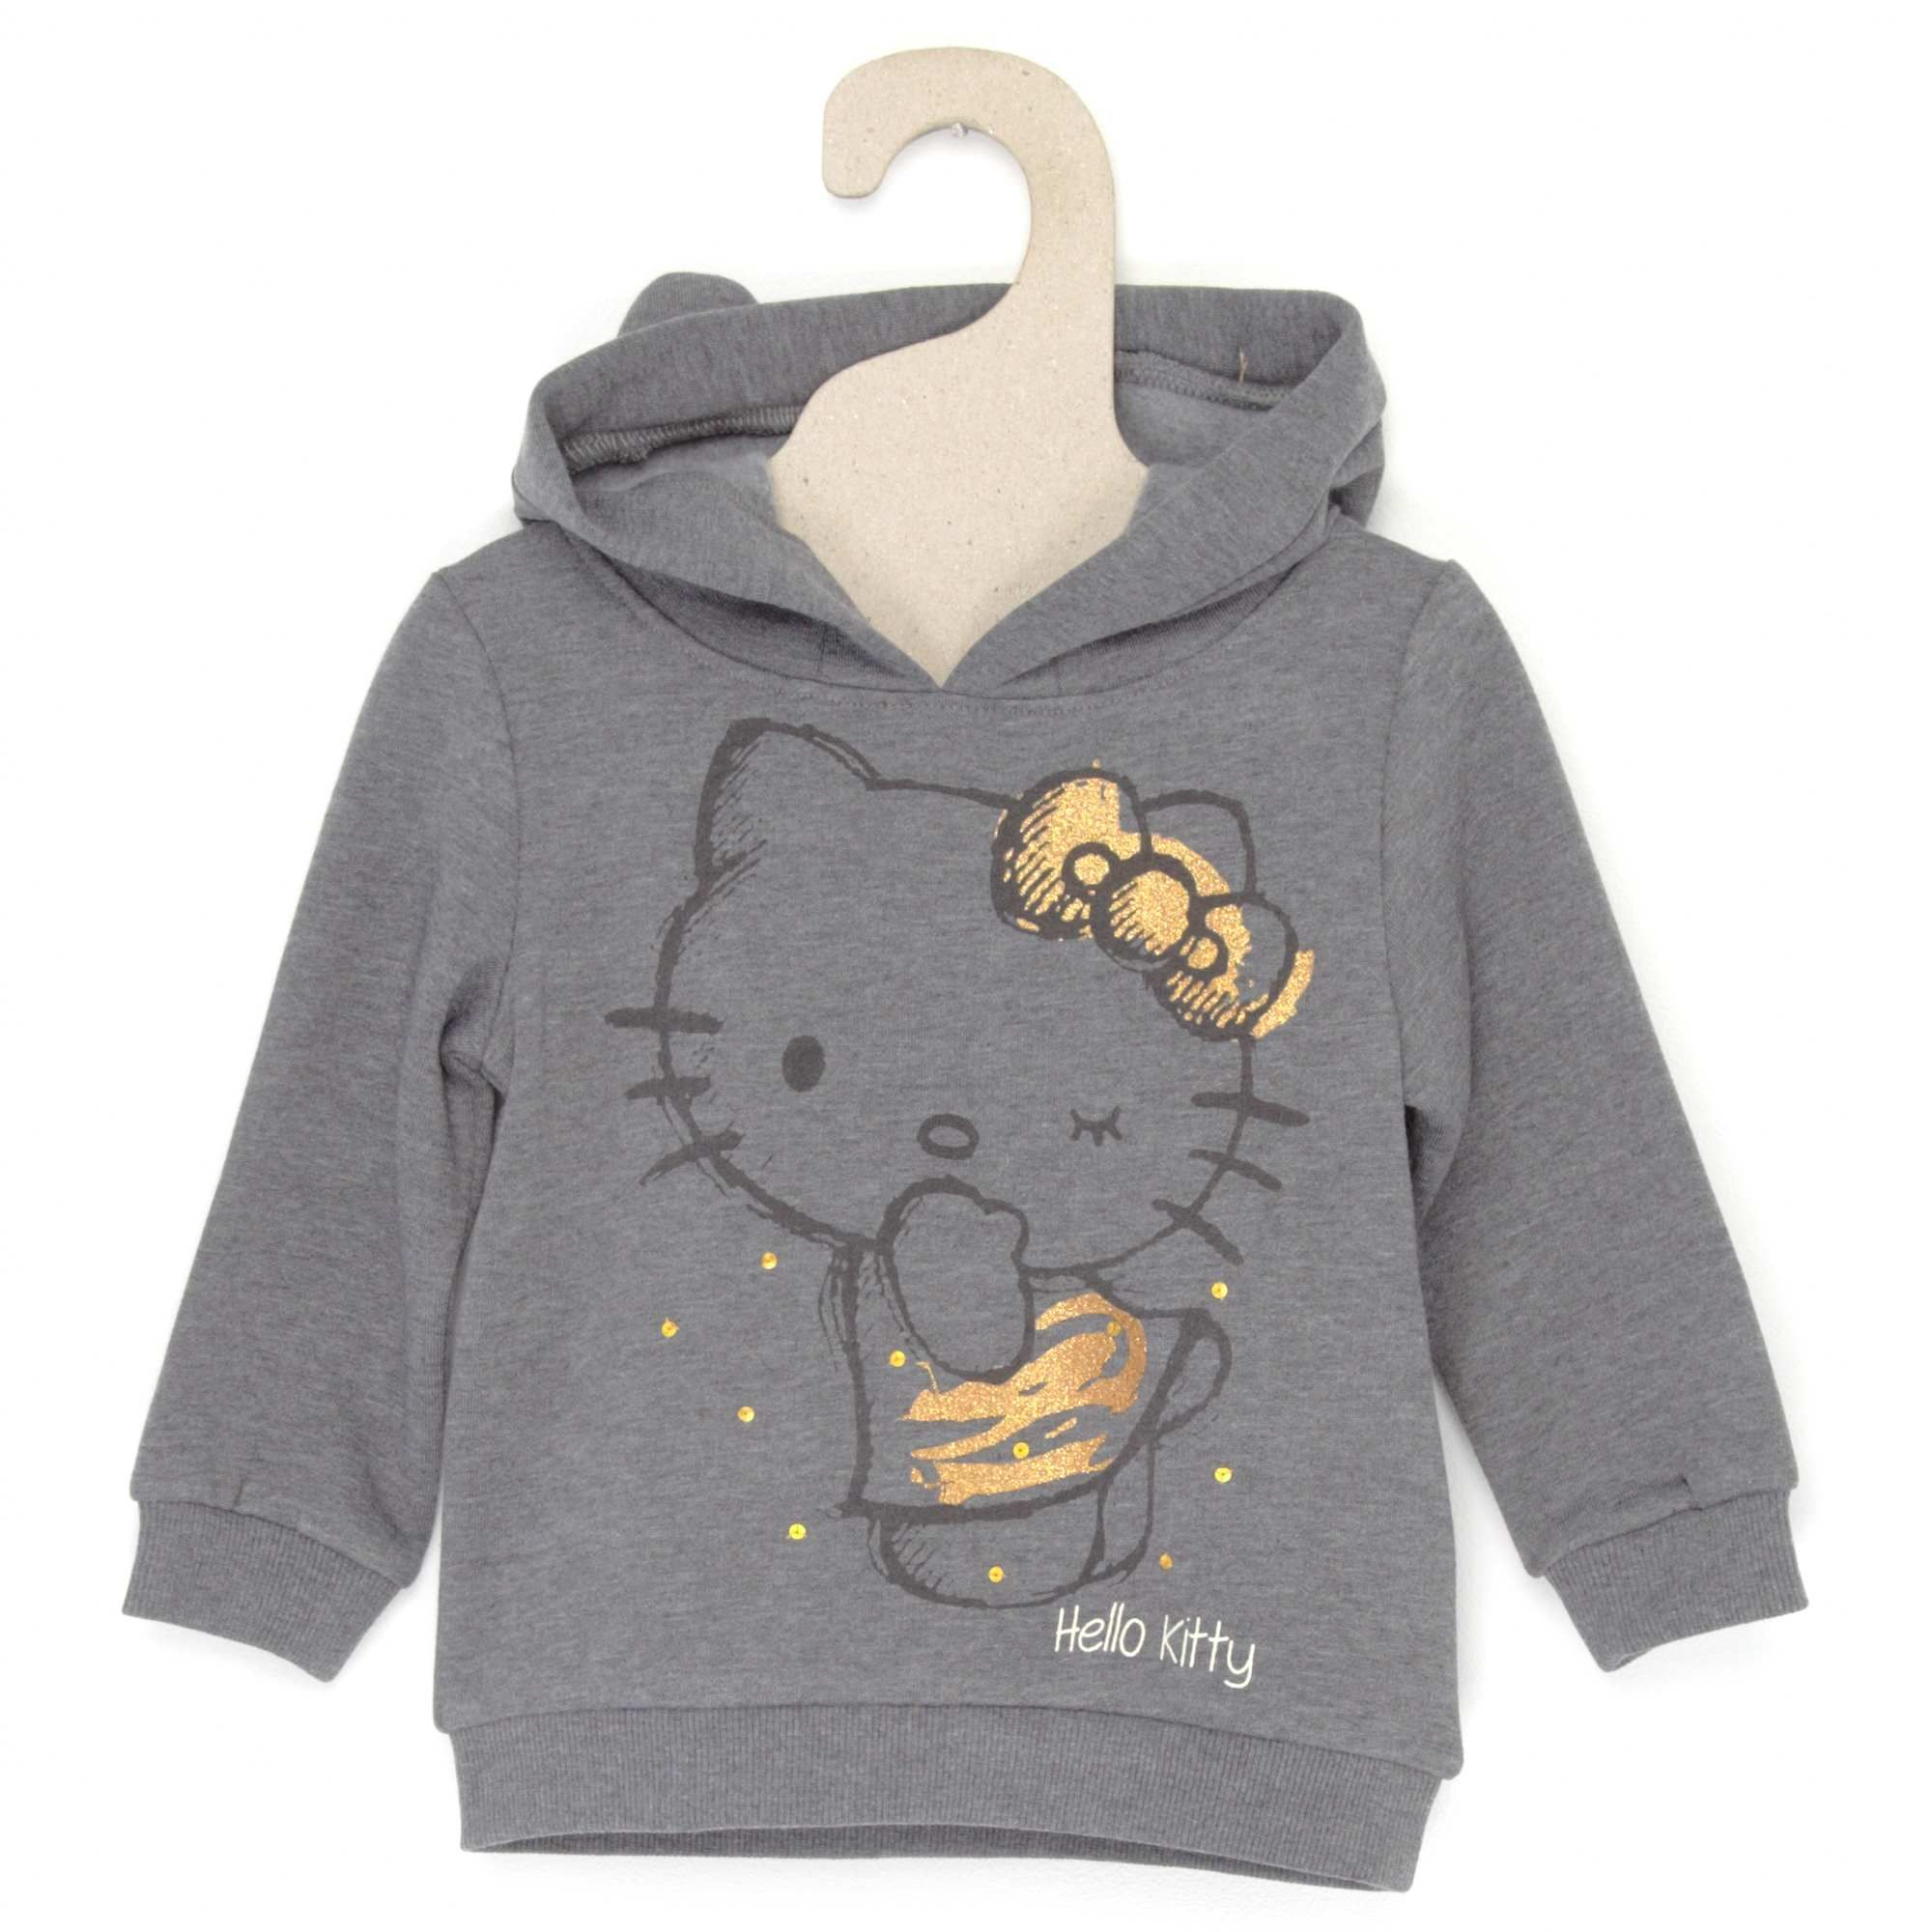 Sweat A Capuche Hello Kitty Petite Fille Kiabi 13 00